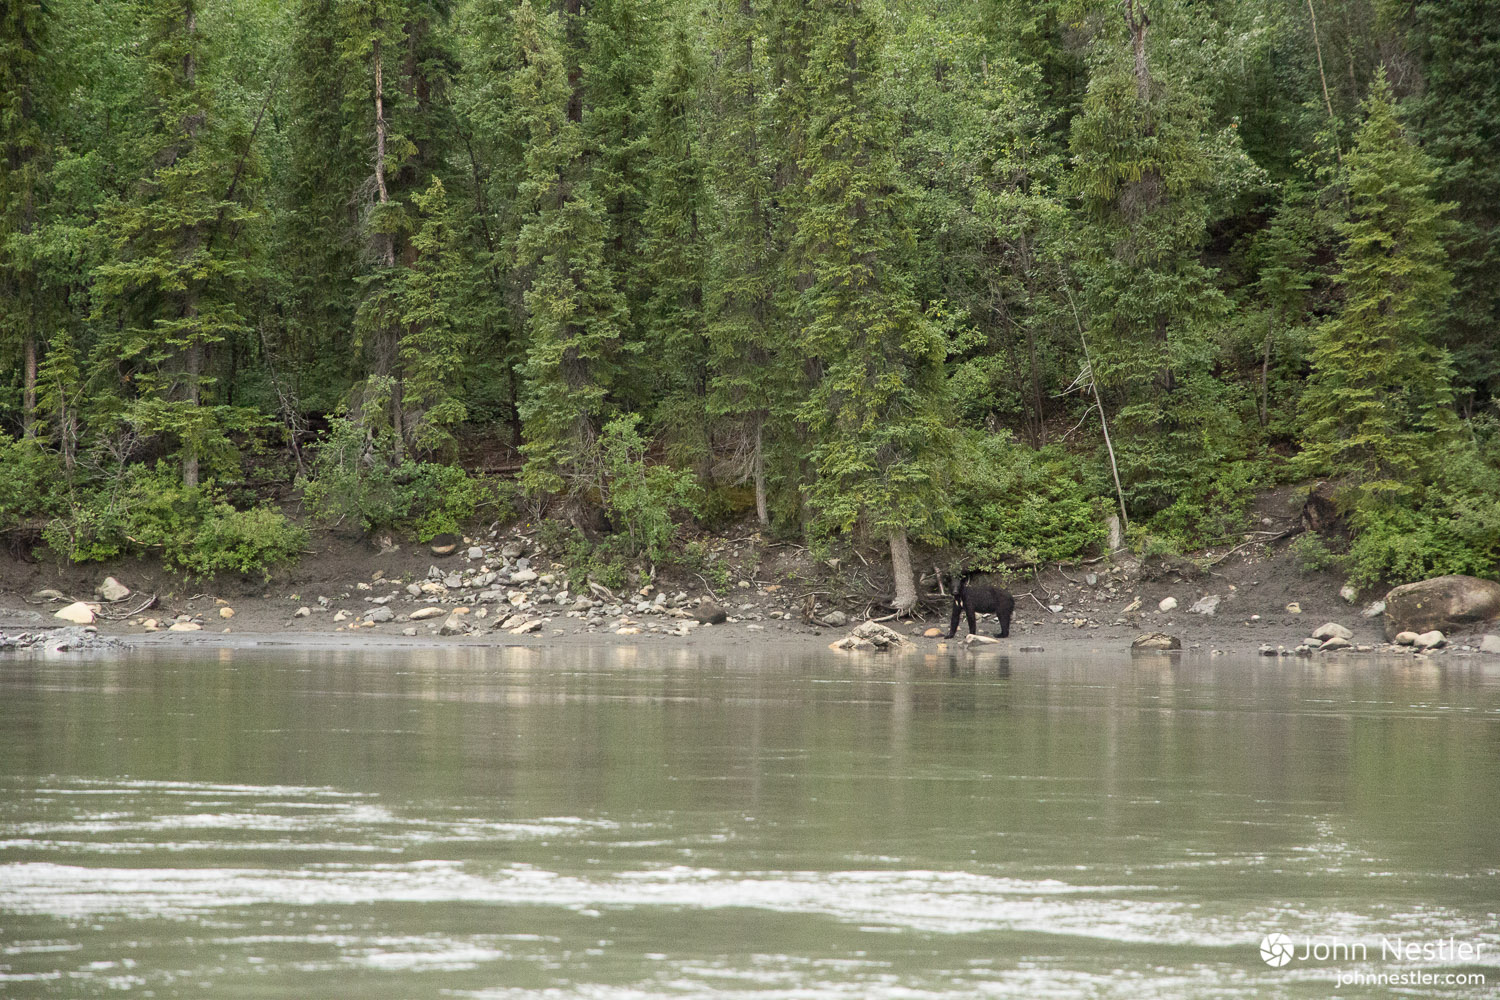 One of the black bears looking on as we floated past.